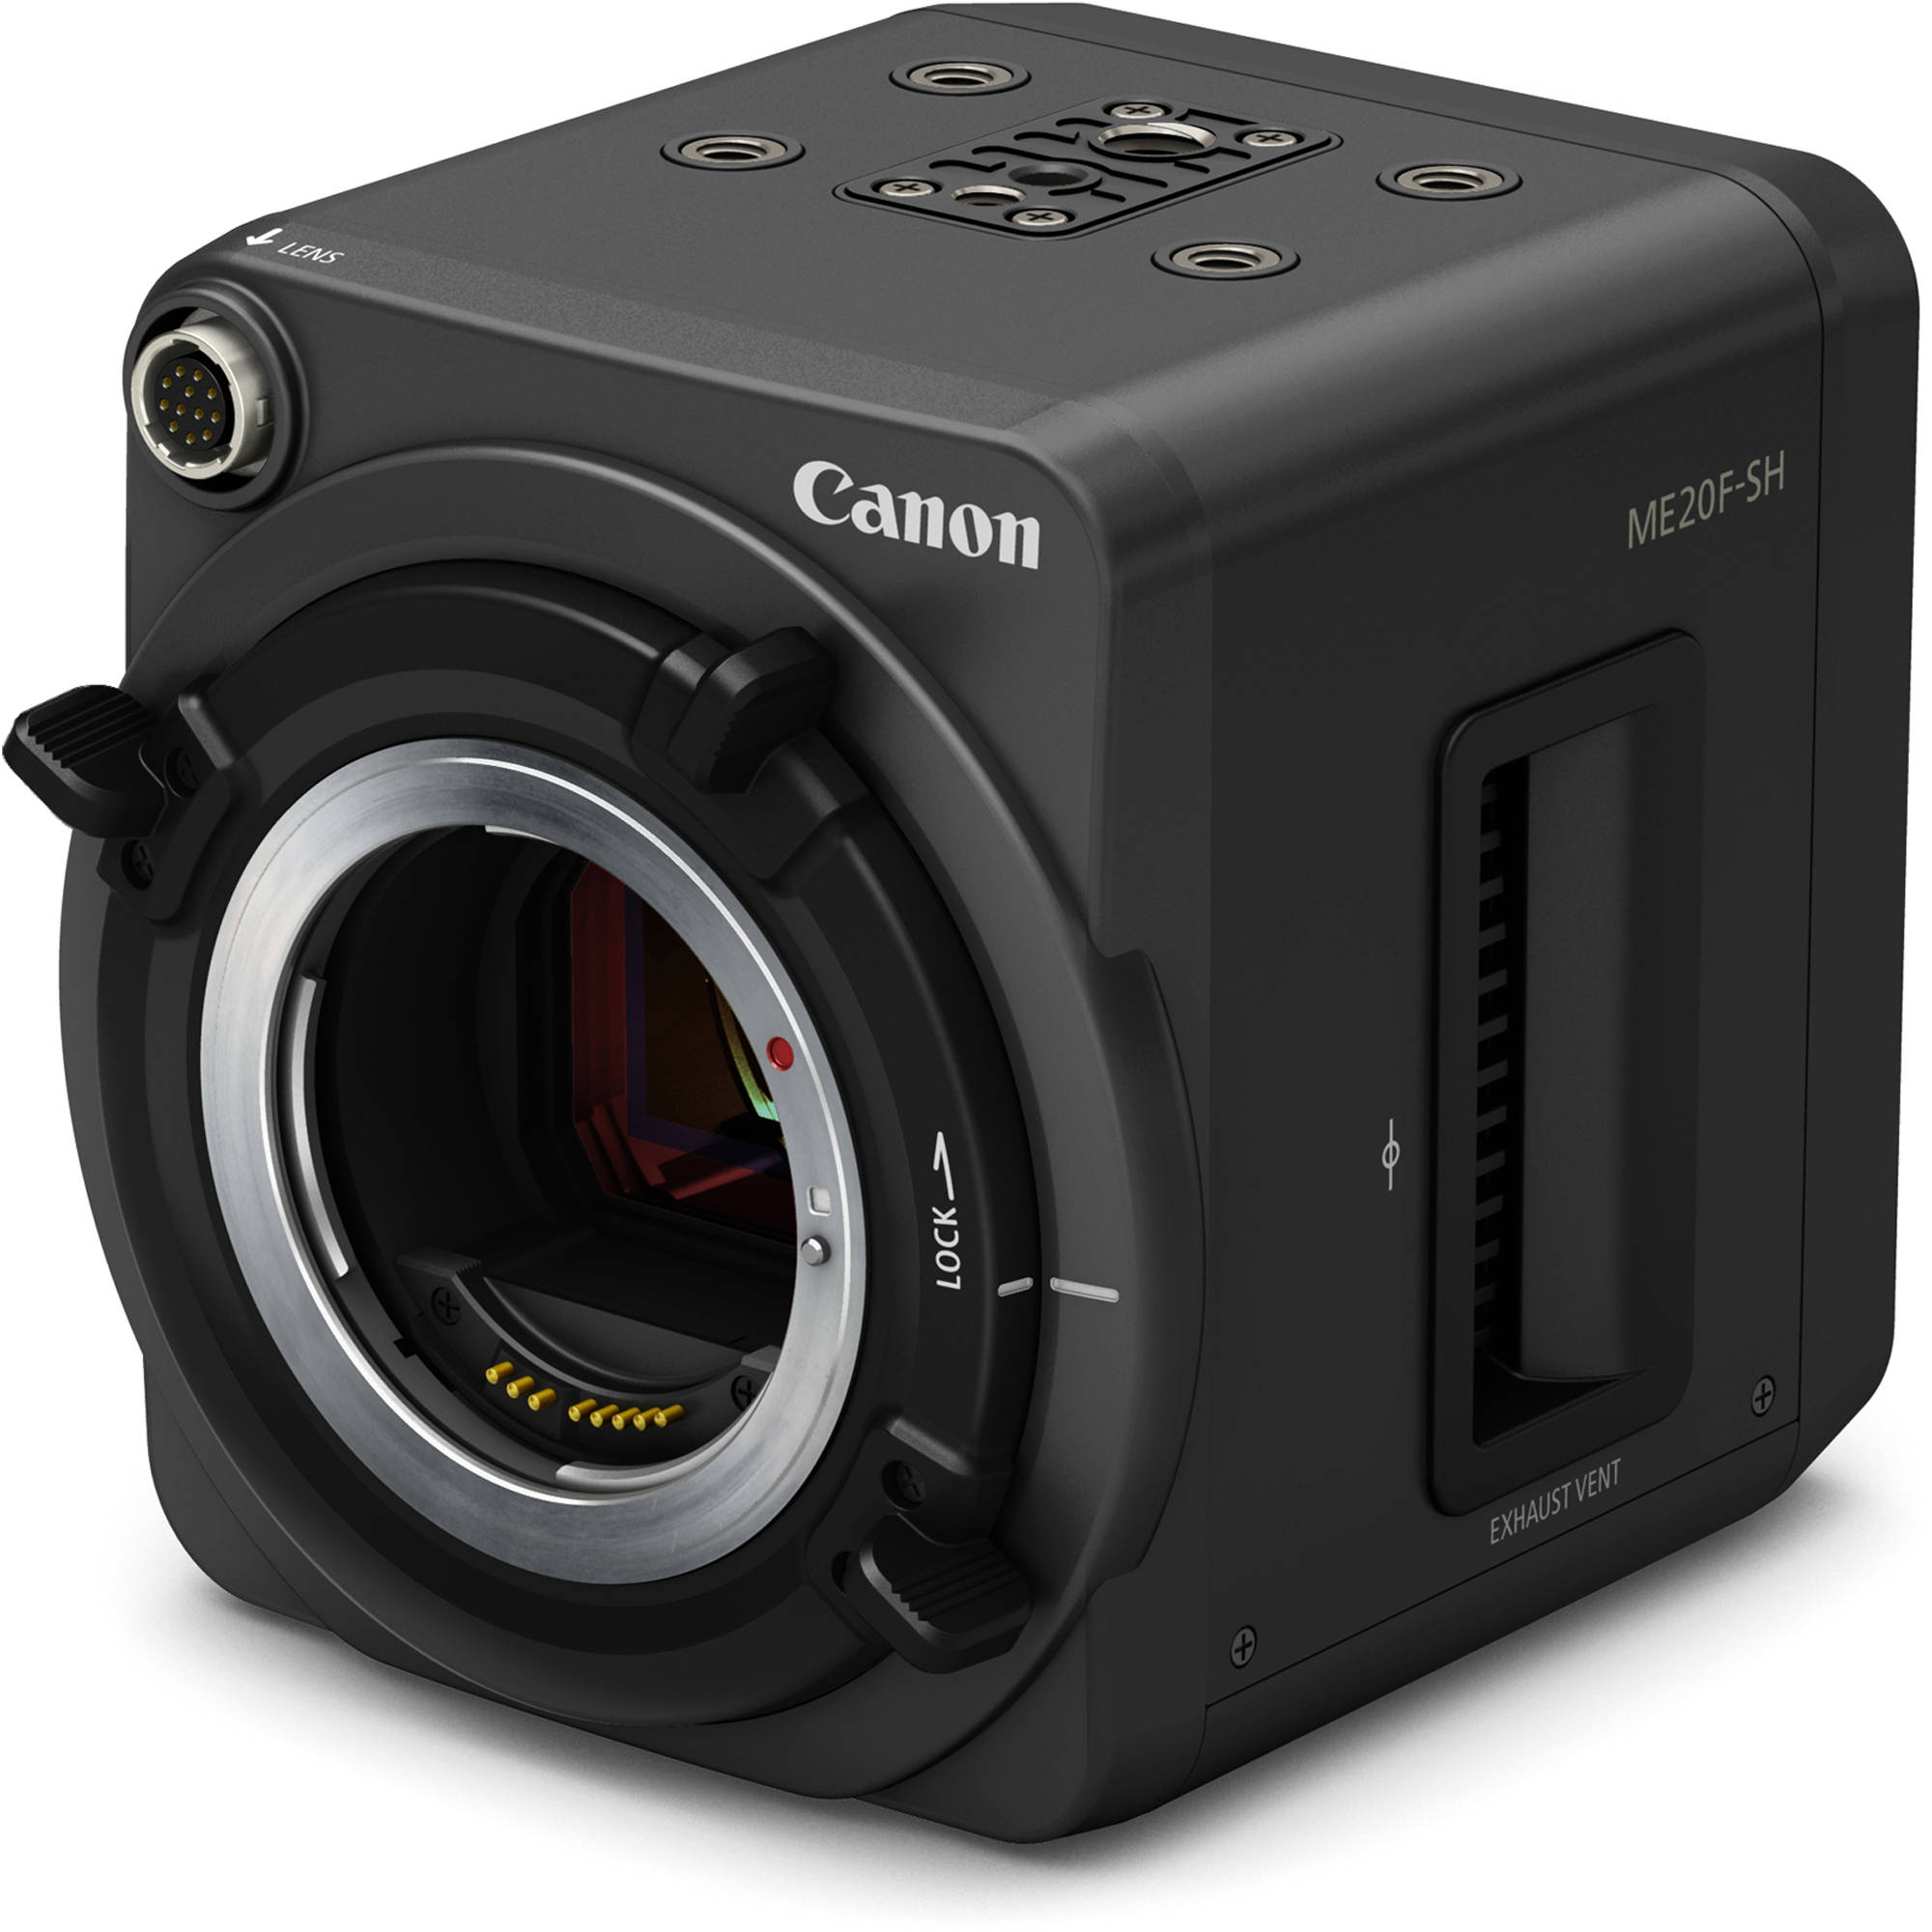 Canon ME20F-SH Multi-Purpose Camera 1002C002 B&H Photo Video